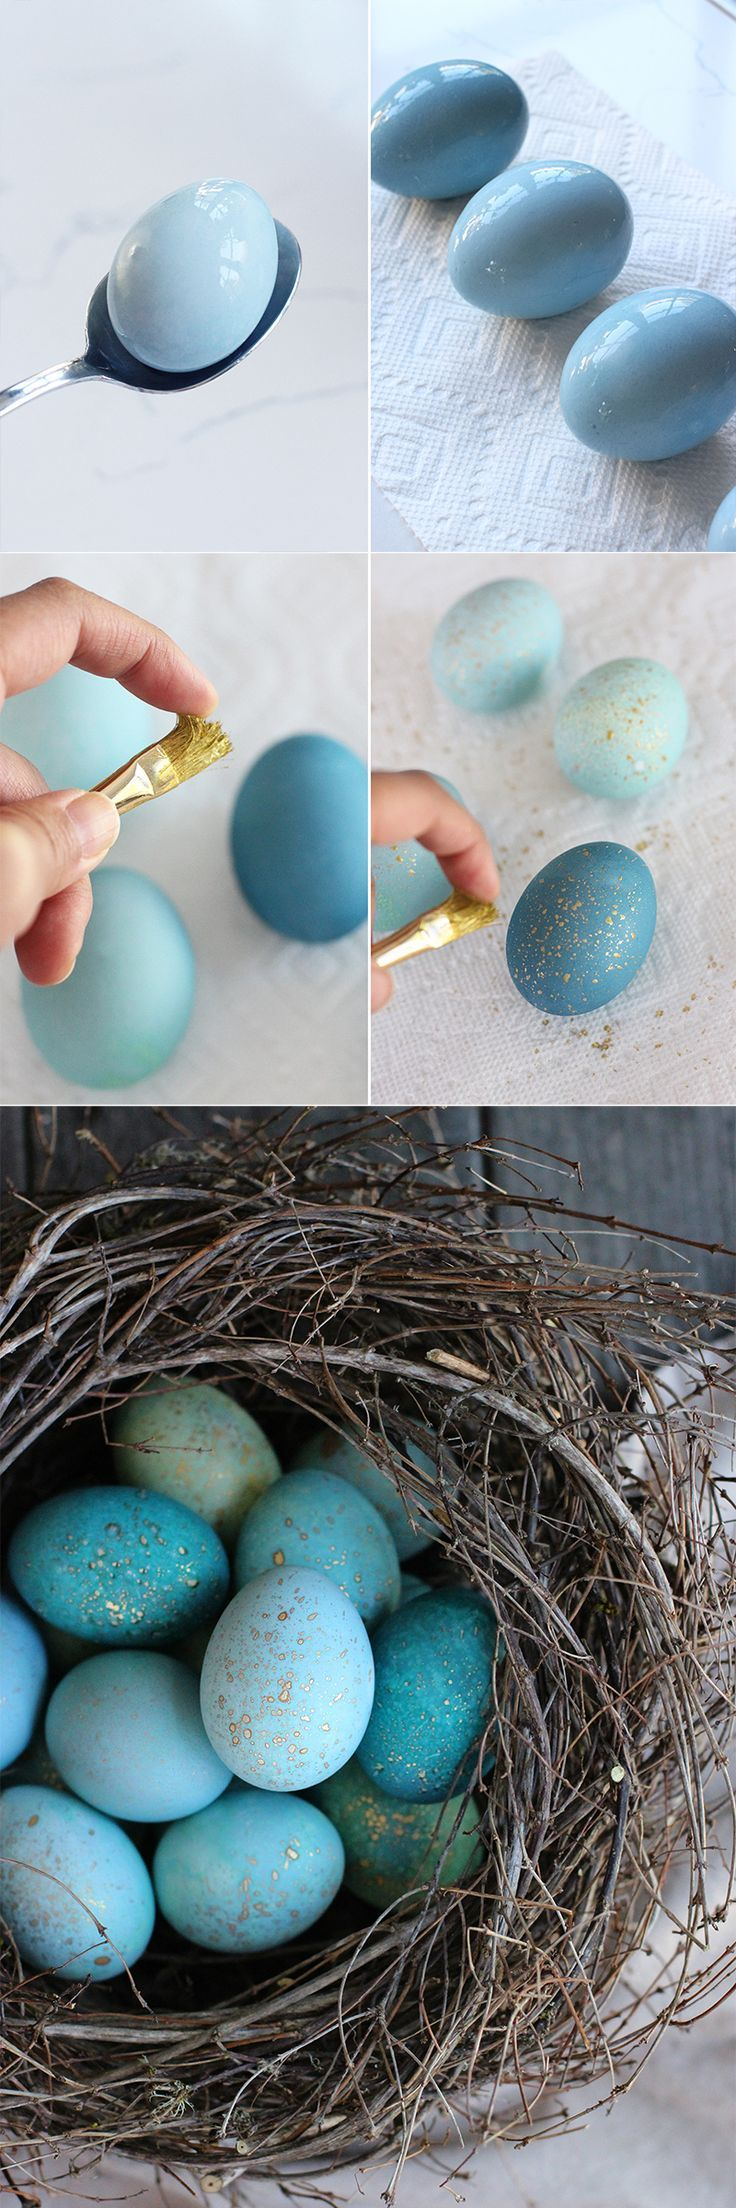 Fast and easy diy easter decorations - Alcohol Inks On Yupo